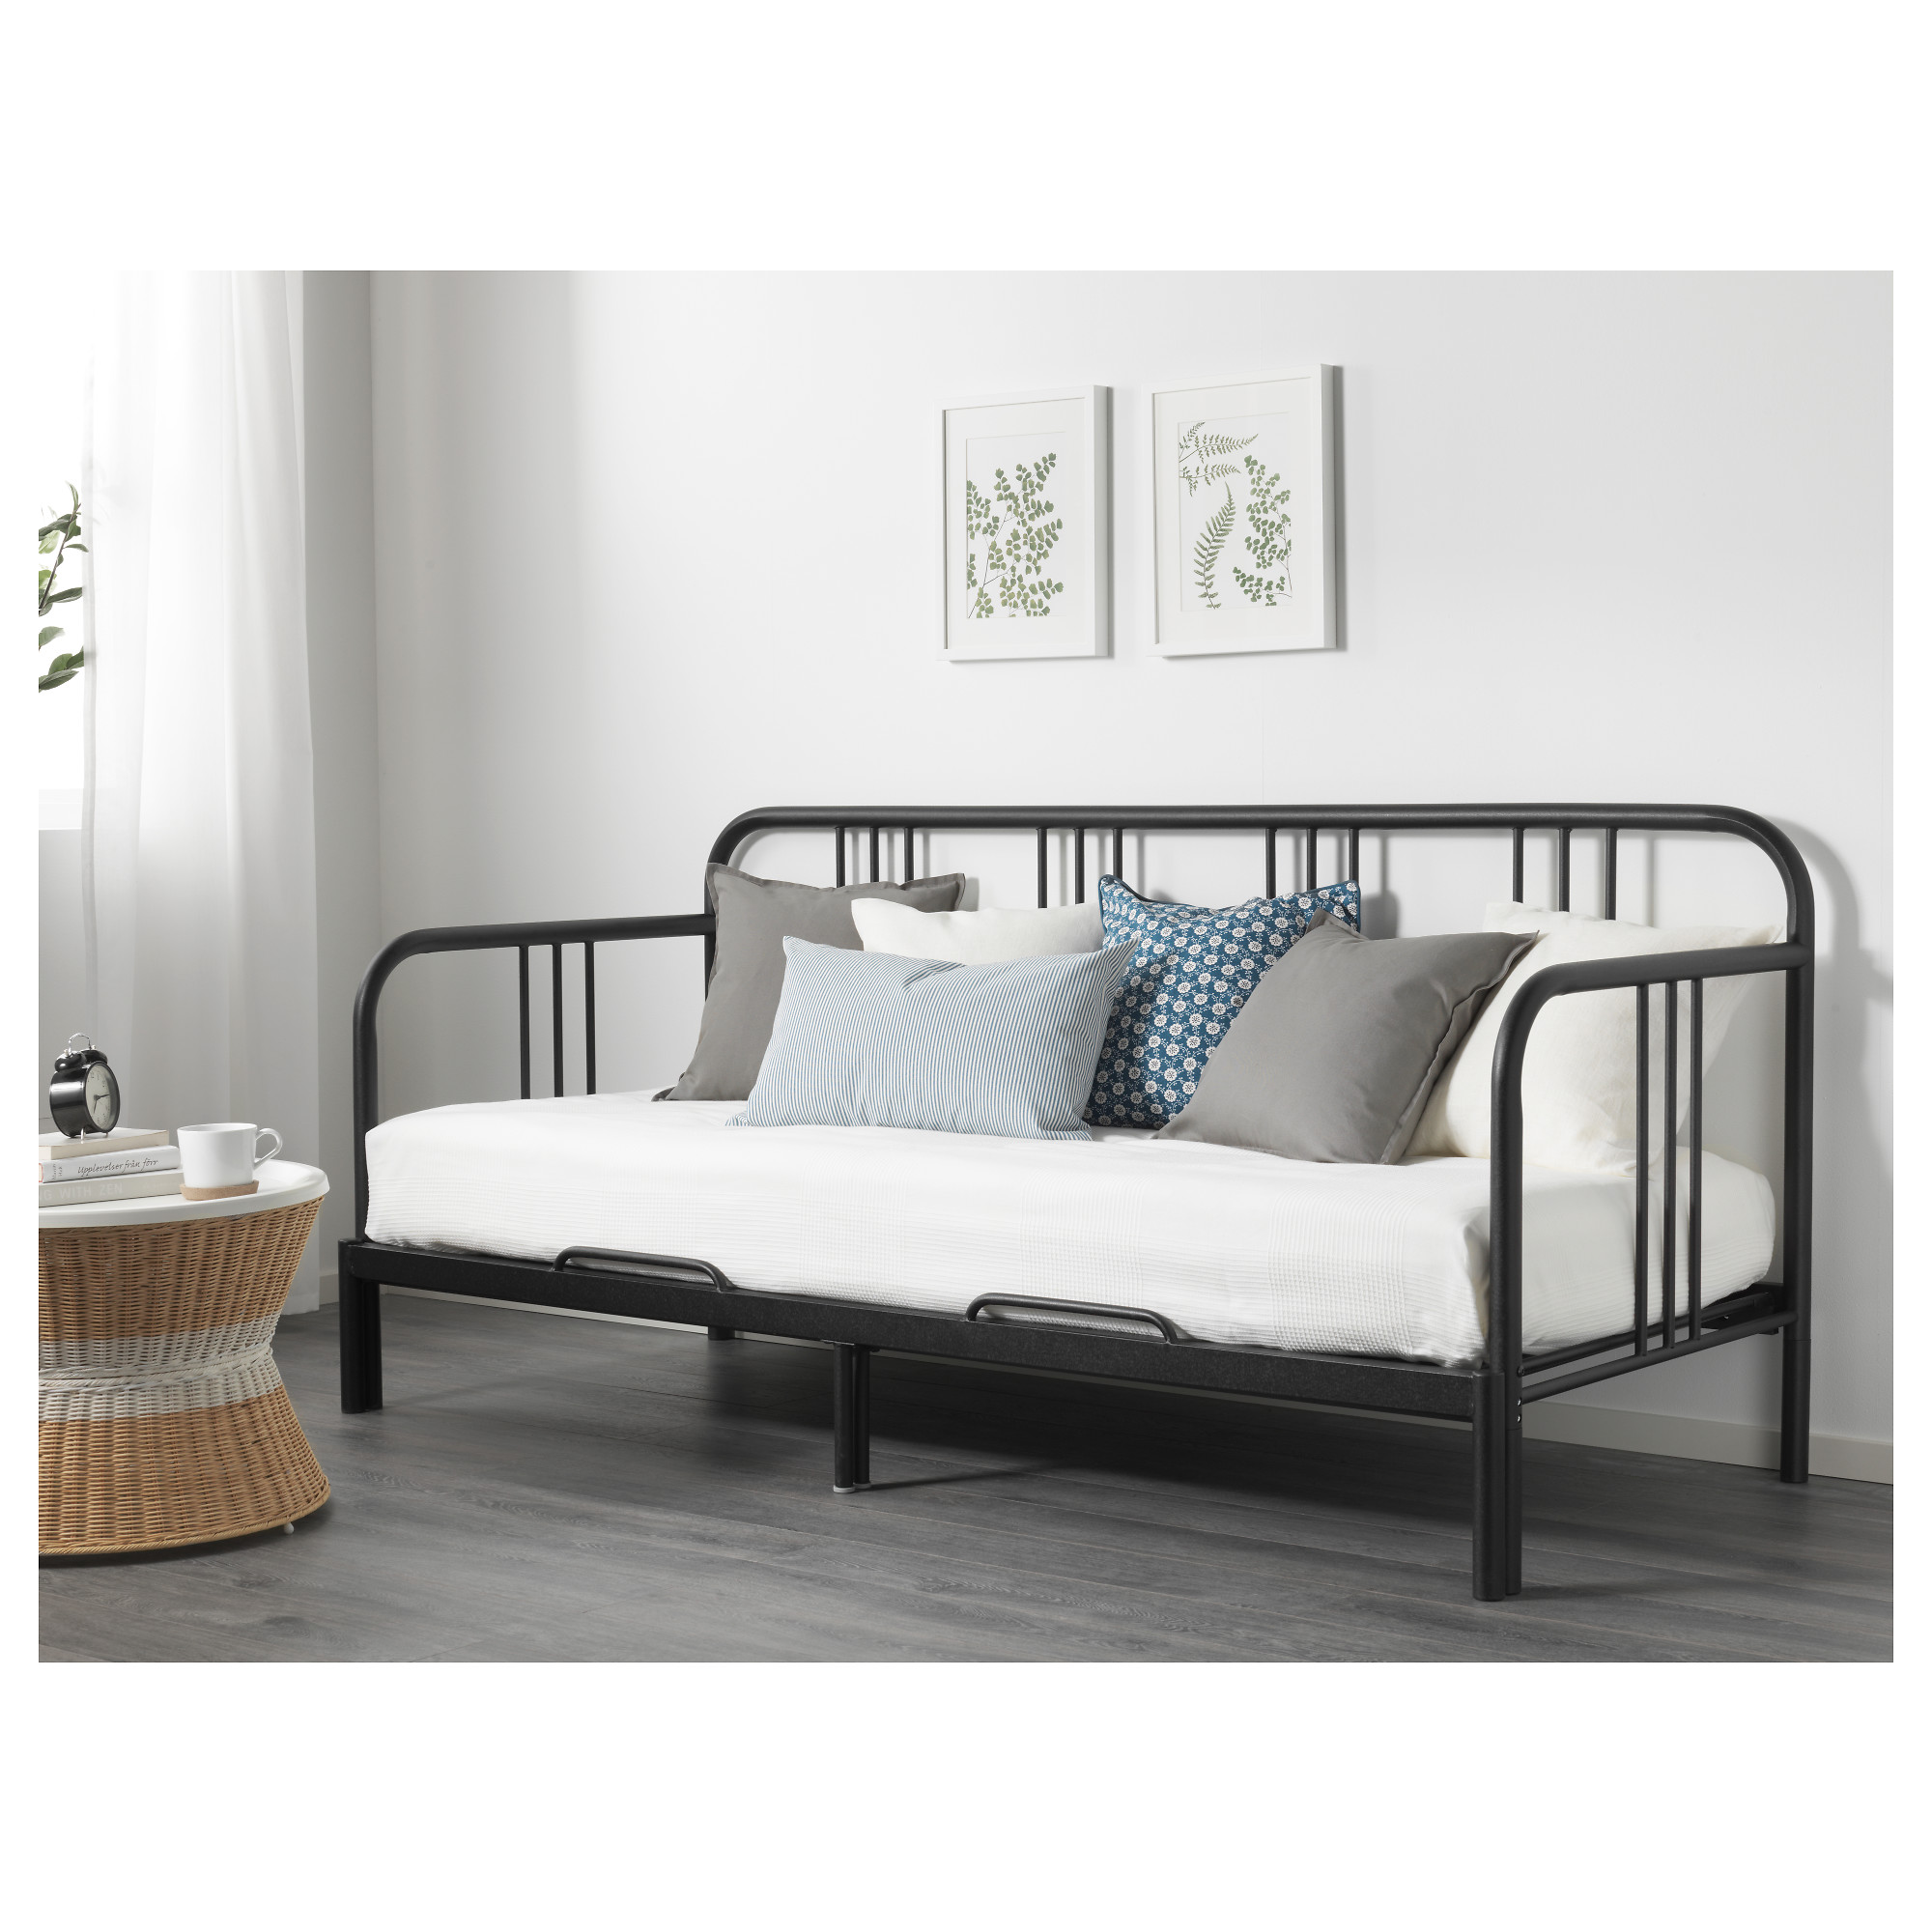 FYRESDAL Daybed with 2 mattresses black Husvika firm IKEA